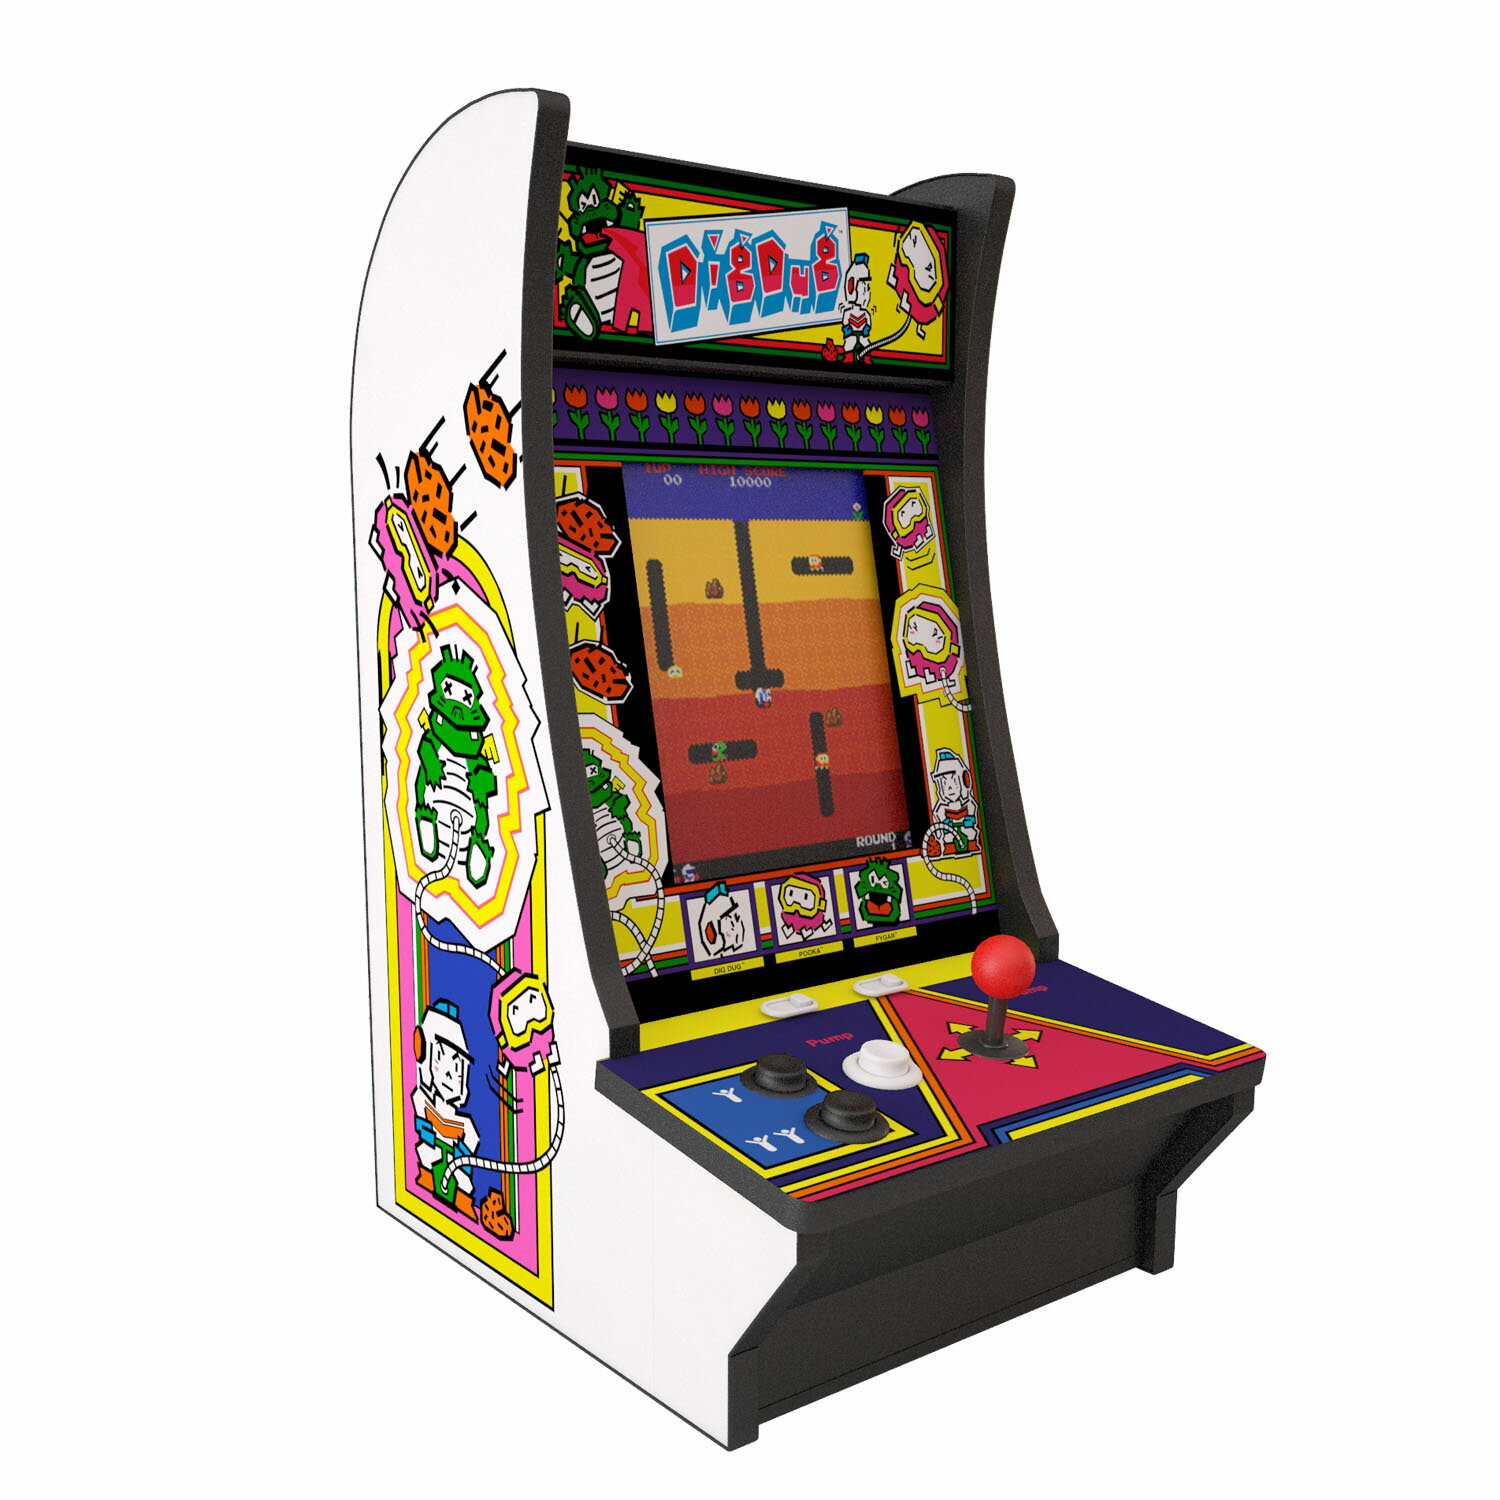 Arcade 1Up Dig Dug & Dig Dug 2 Counter Arcade System